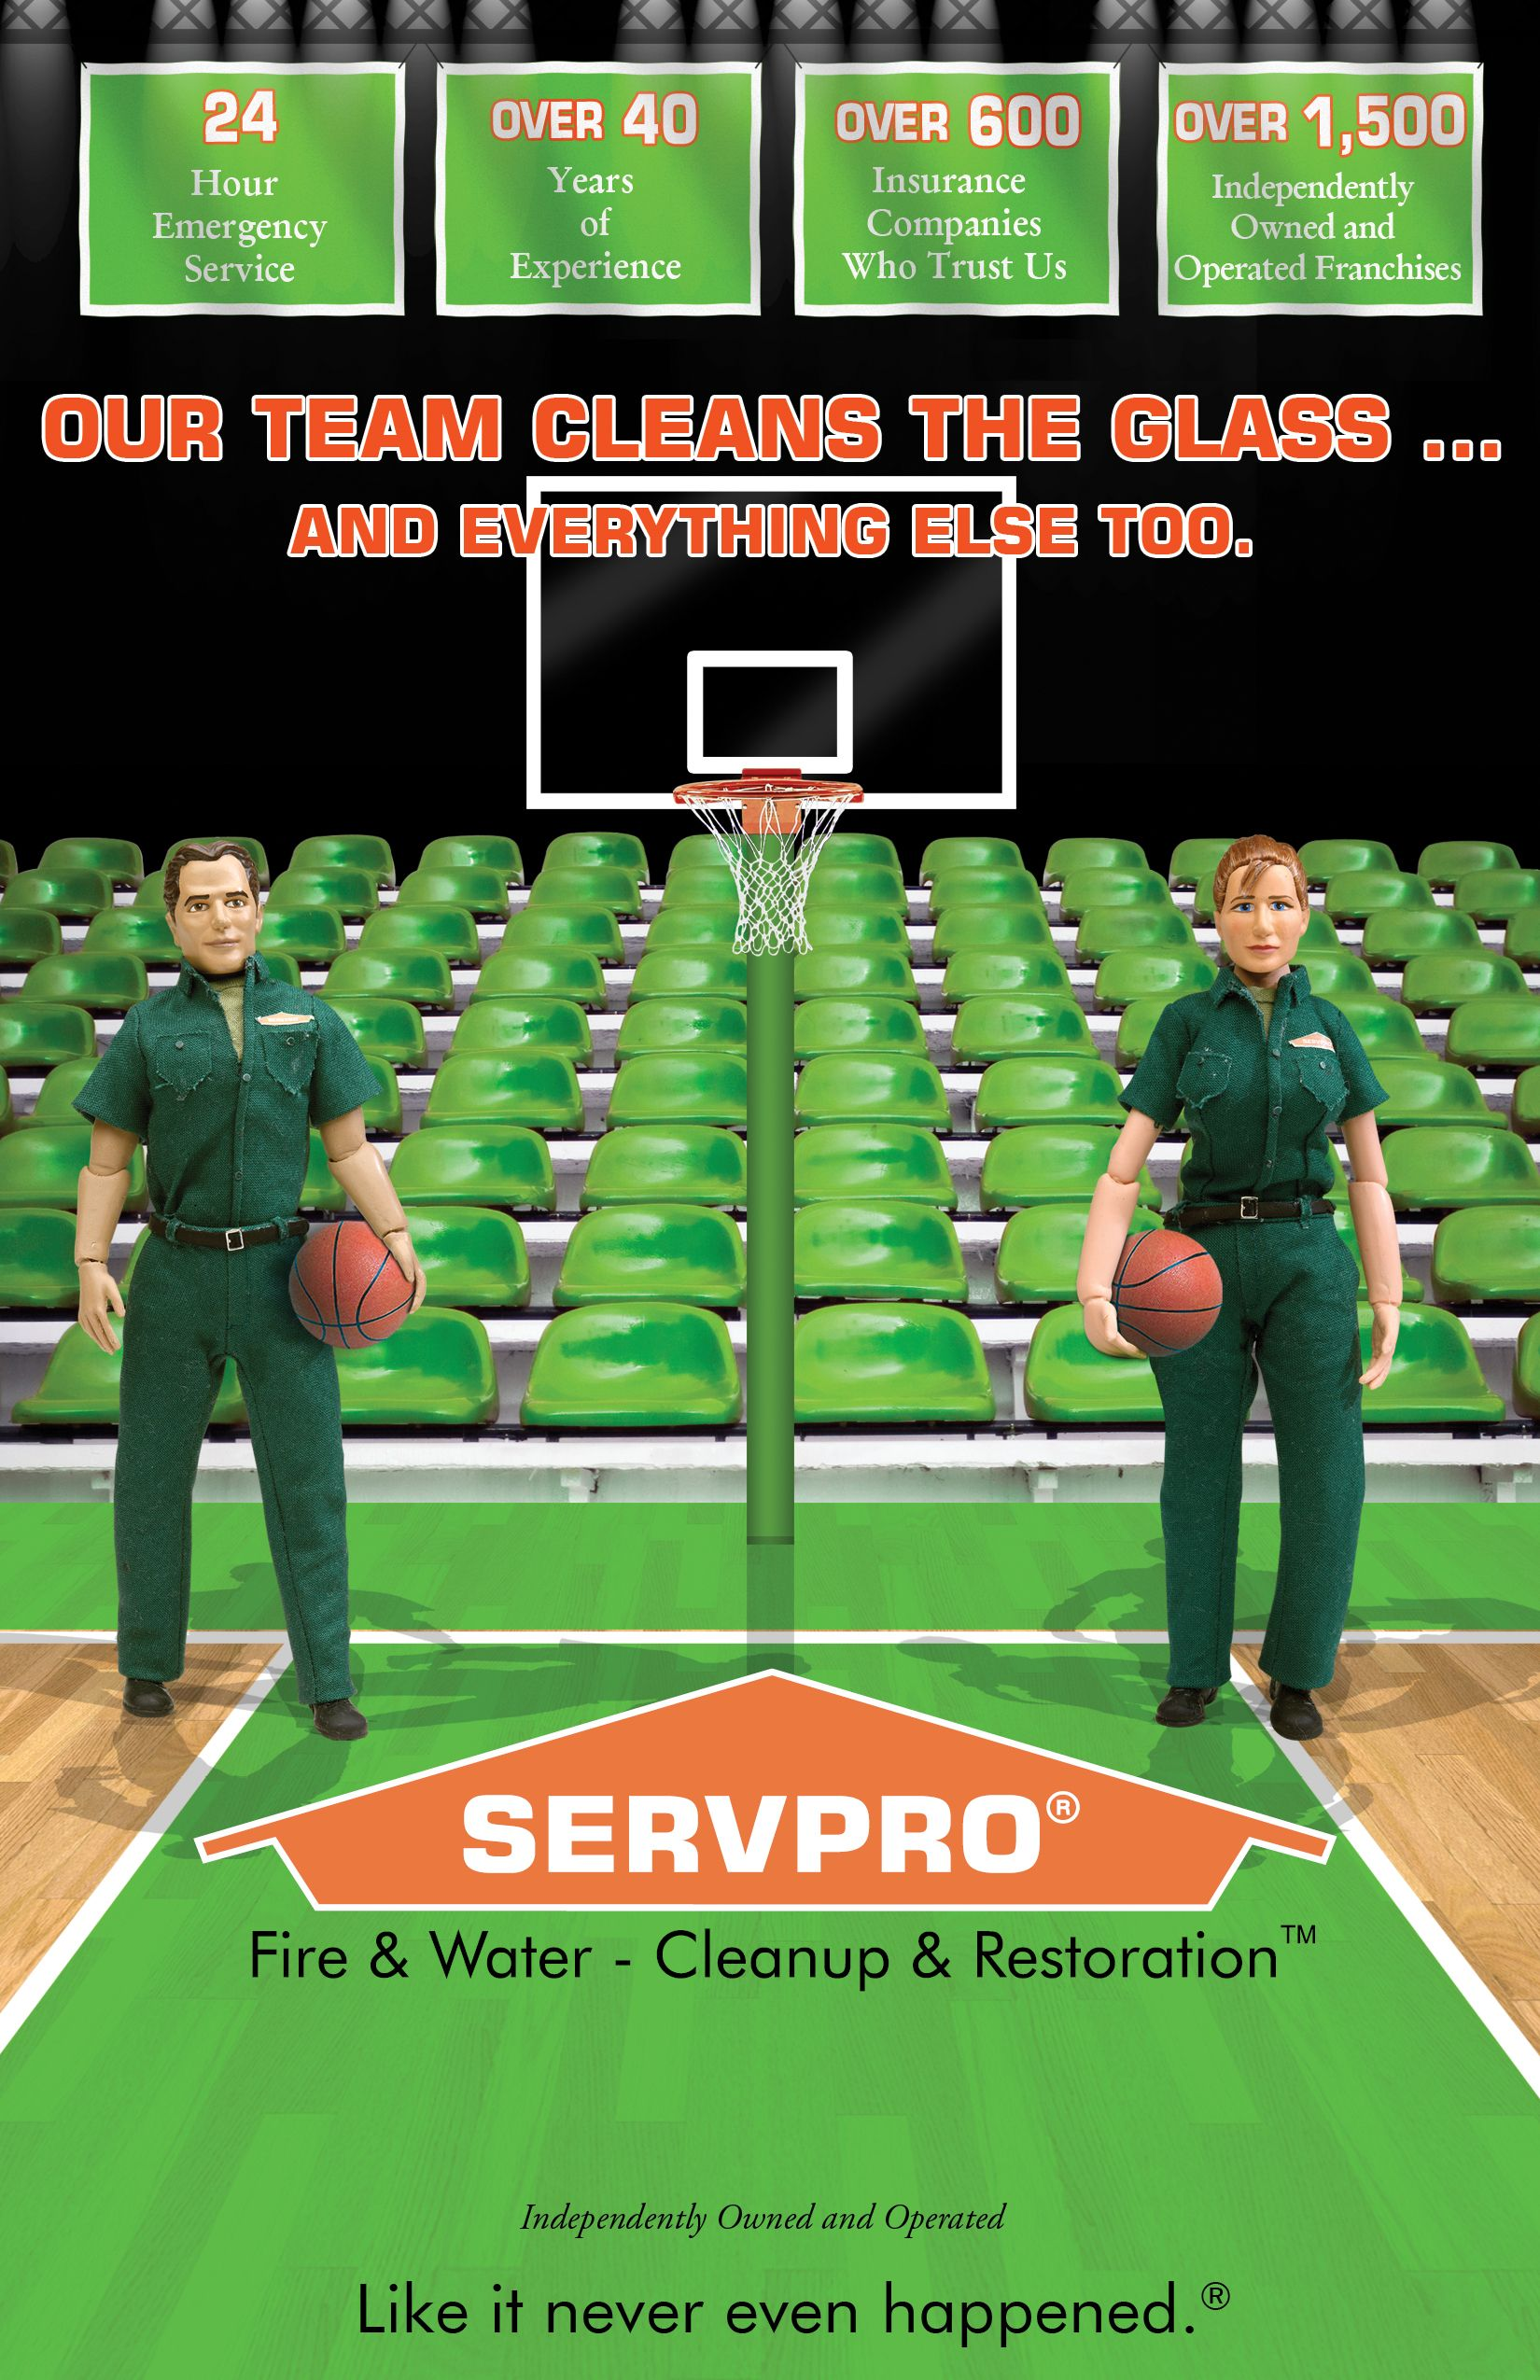 Call Servpro Of Rockingham County For All Your Cleaning Needs 336 573 4345 Rockingham County Water Damage Decatur